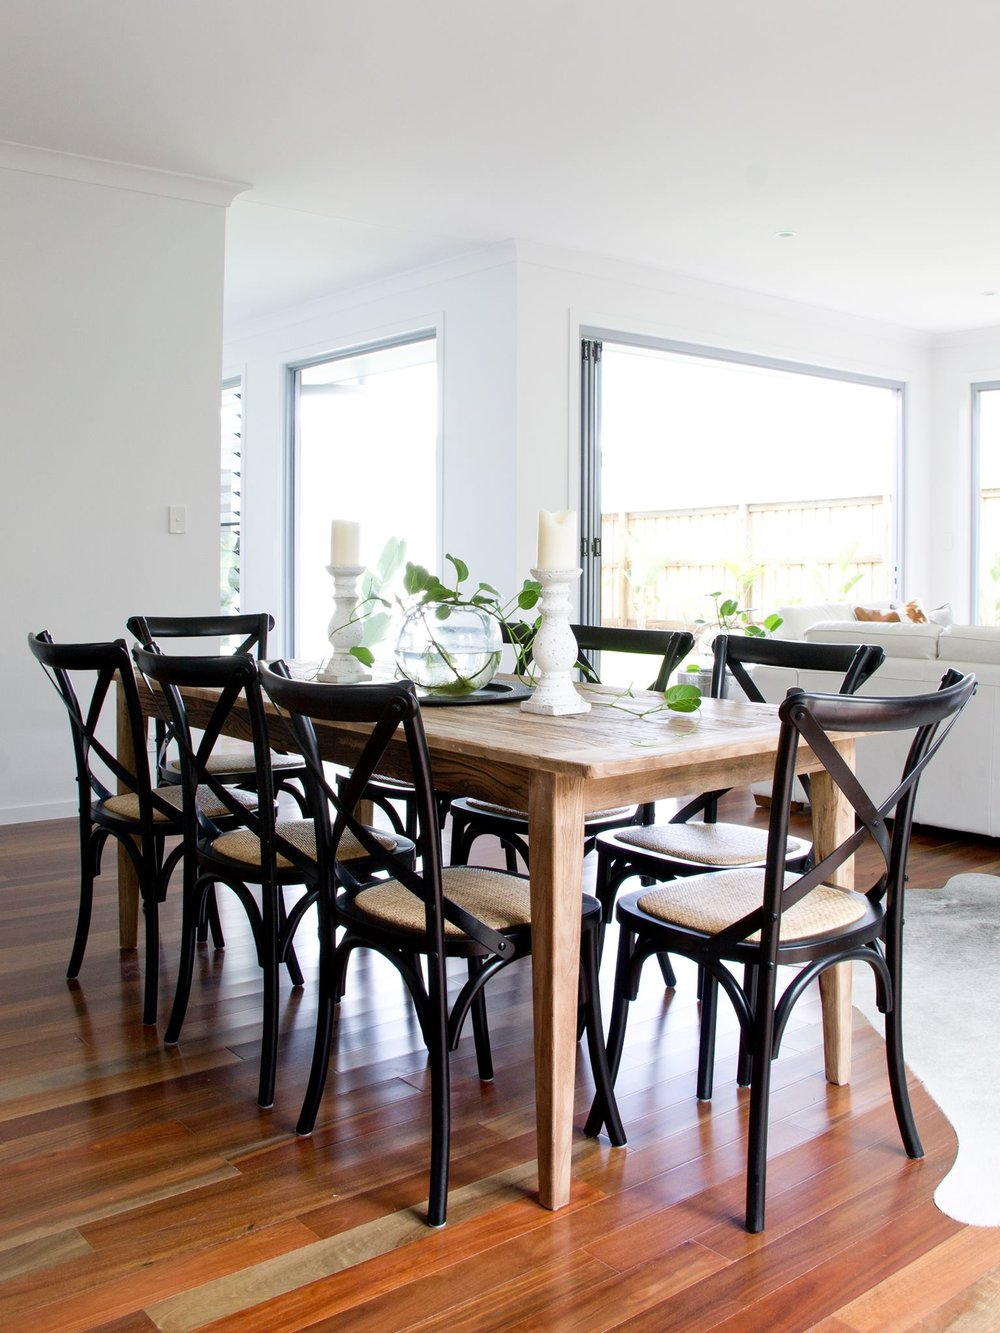 Kingscliff property styling and home staging packages